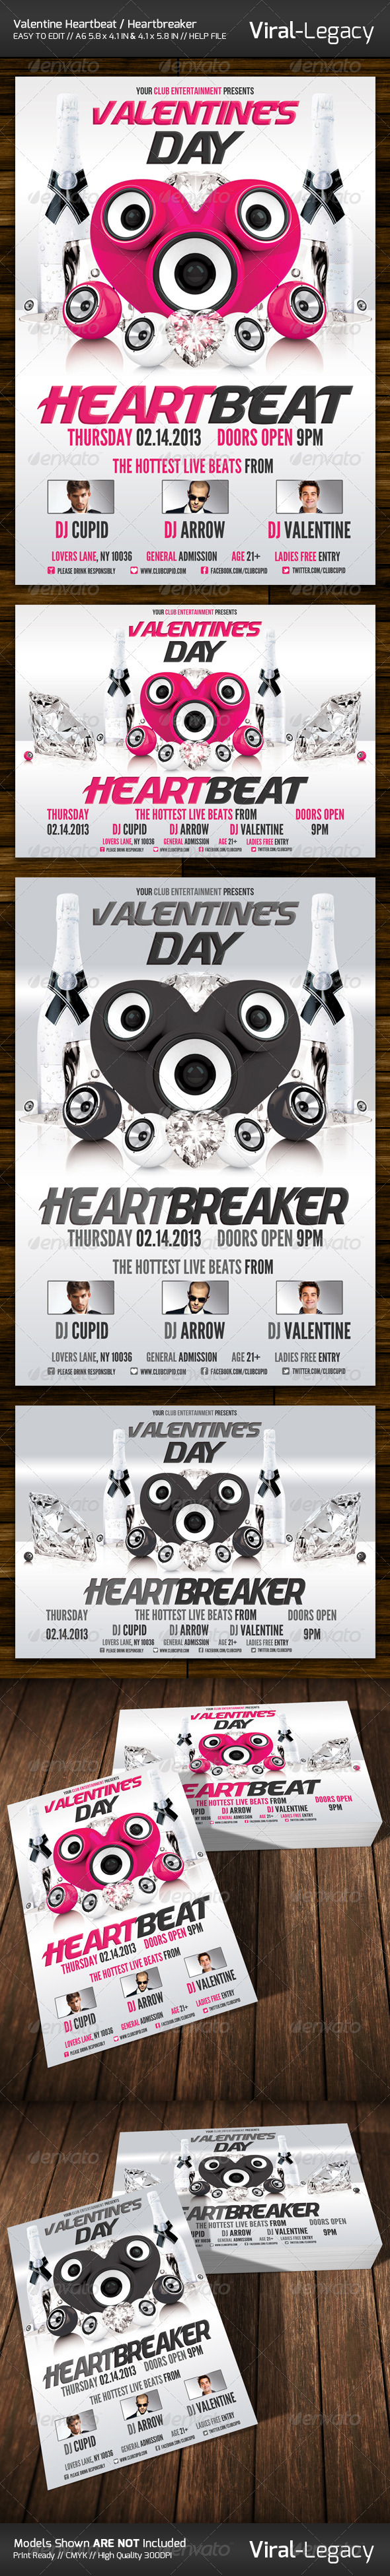 Valentine's Day Heartbeat / Heartbreaker Flyer - Clubs & Parties Events